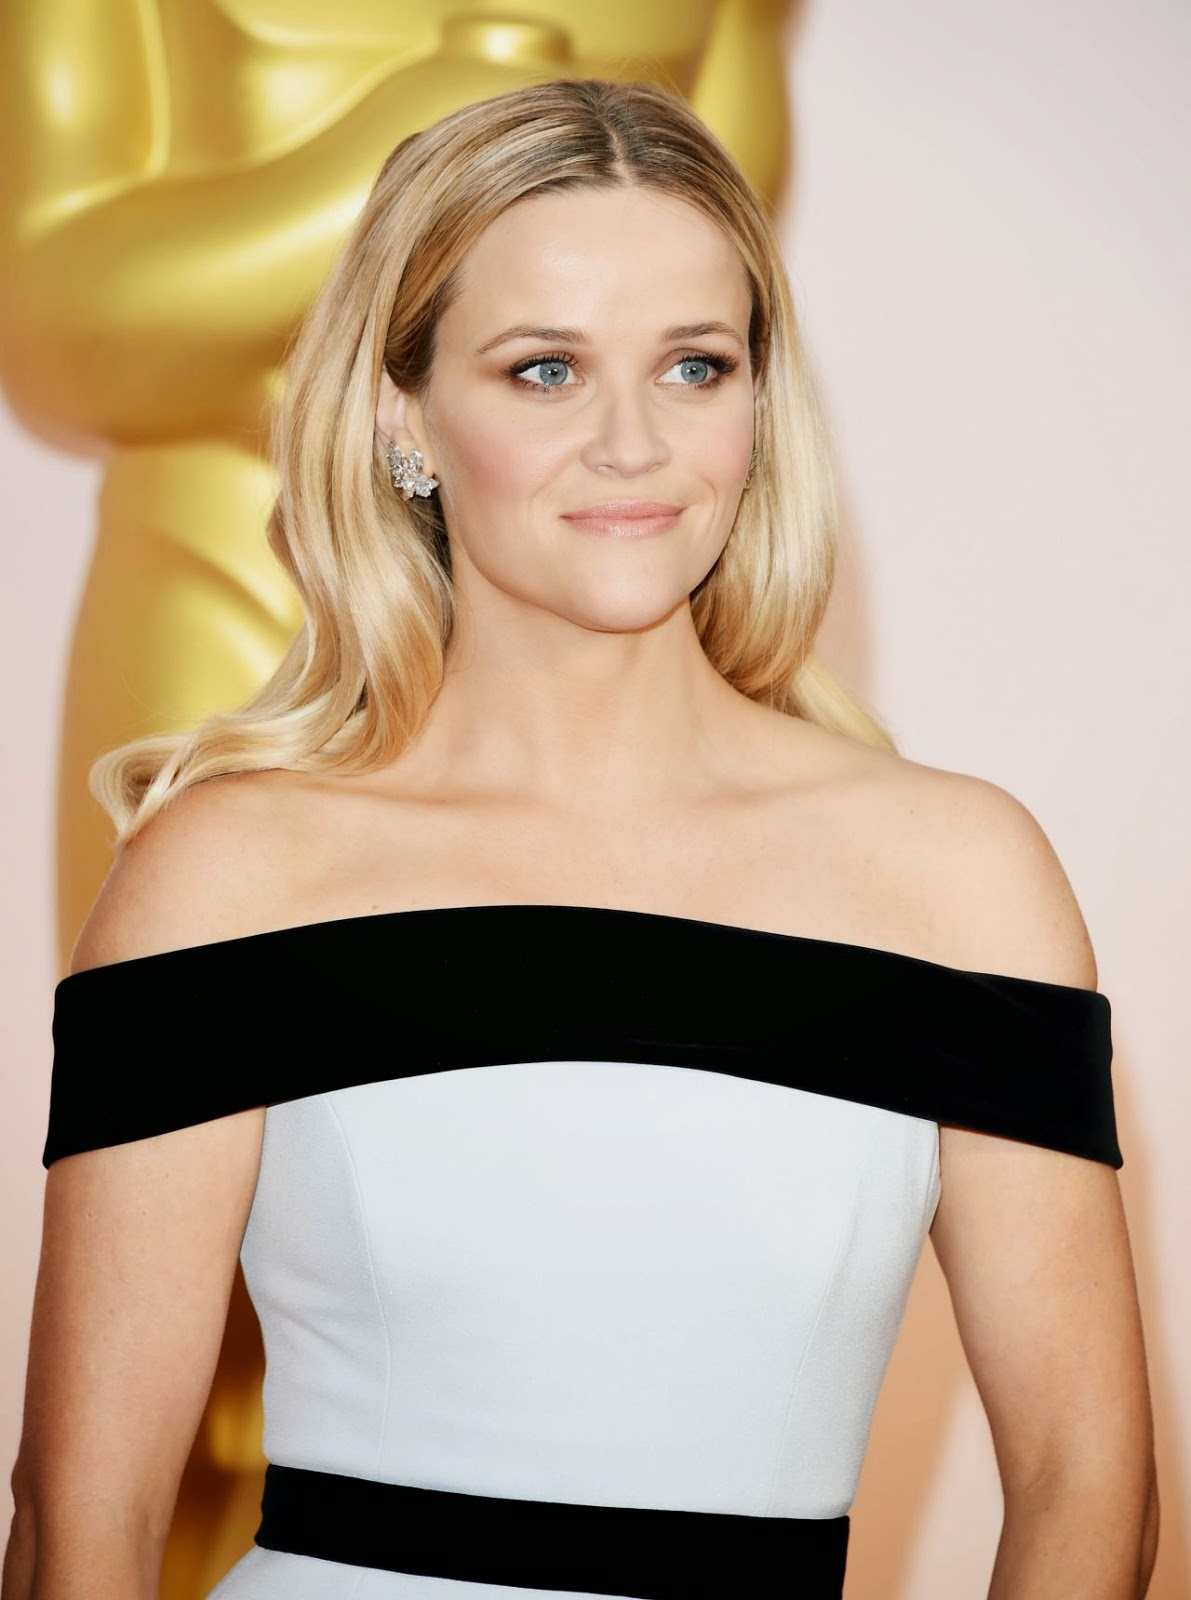 Reese Witherspoon wears an off-shoulder Tom Ford dress at the 2015 Oscars in Hollywood